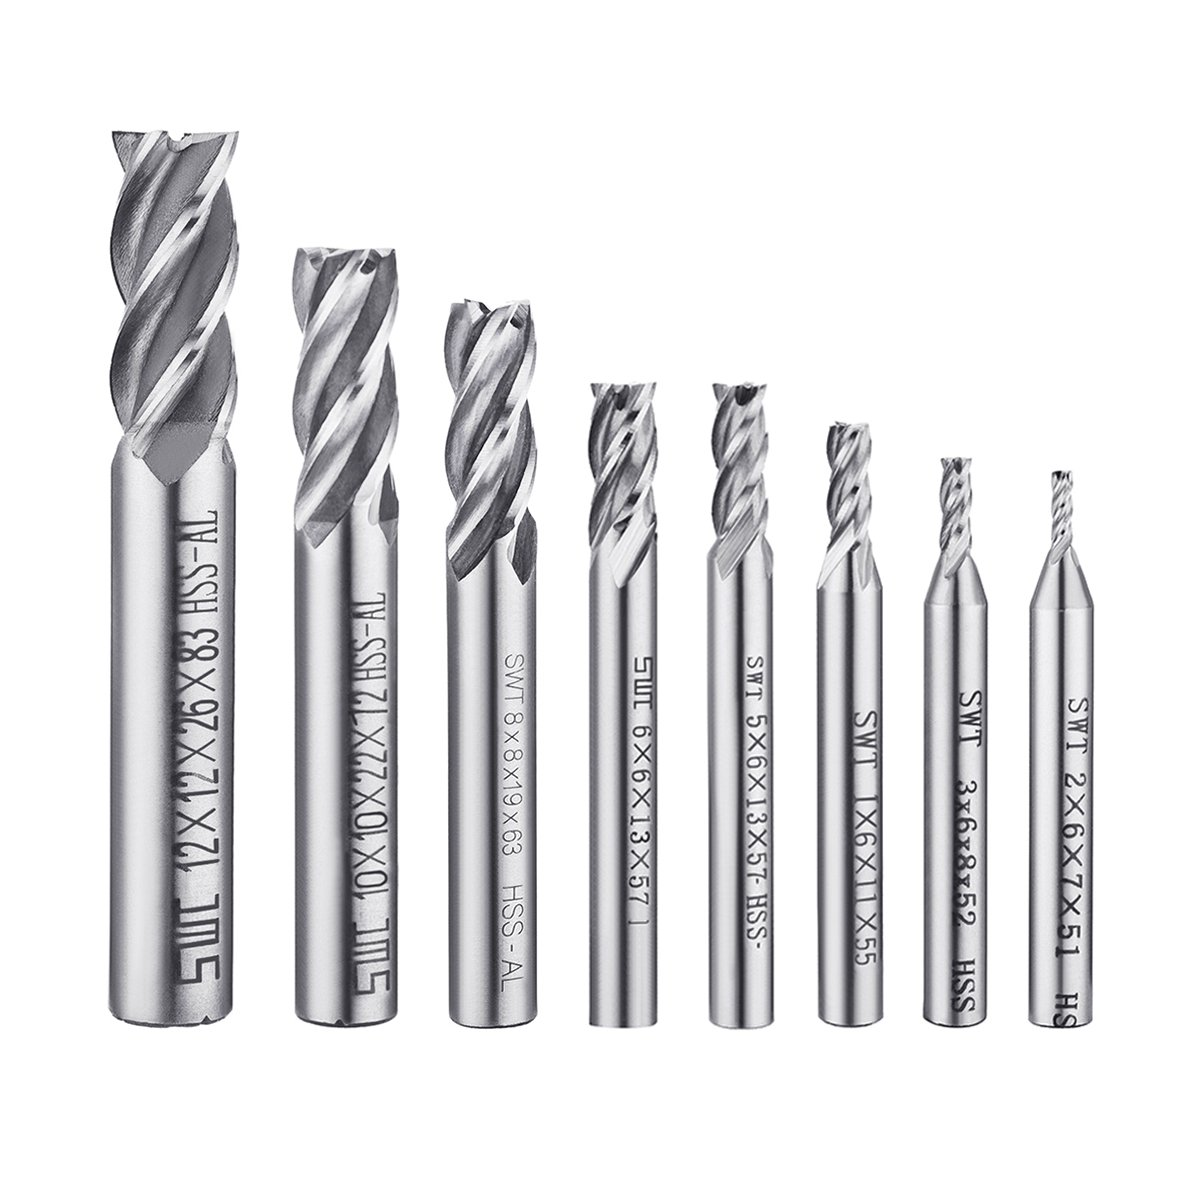 8Pcs End Mill Bits, DRILLPRO HSS CNC End Mill Cutter Drill Bits for Wood, Aluminum, Steel, Titanium, Straight 4 Flute Mill Bit Set 1/16'' - 1/2''